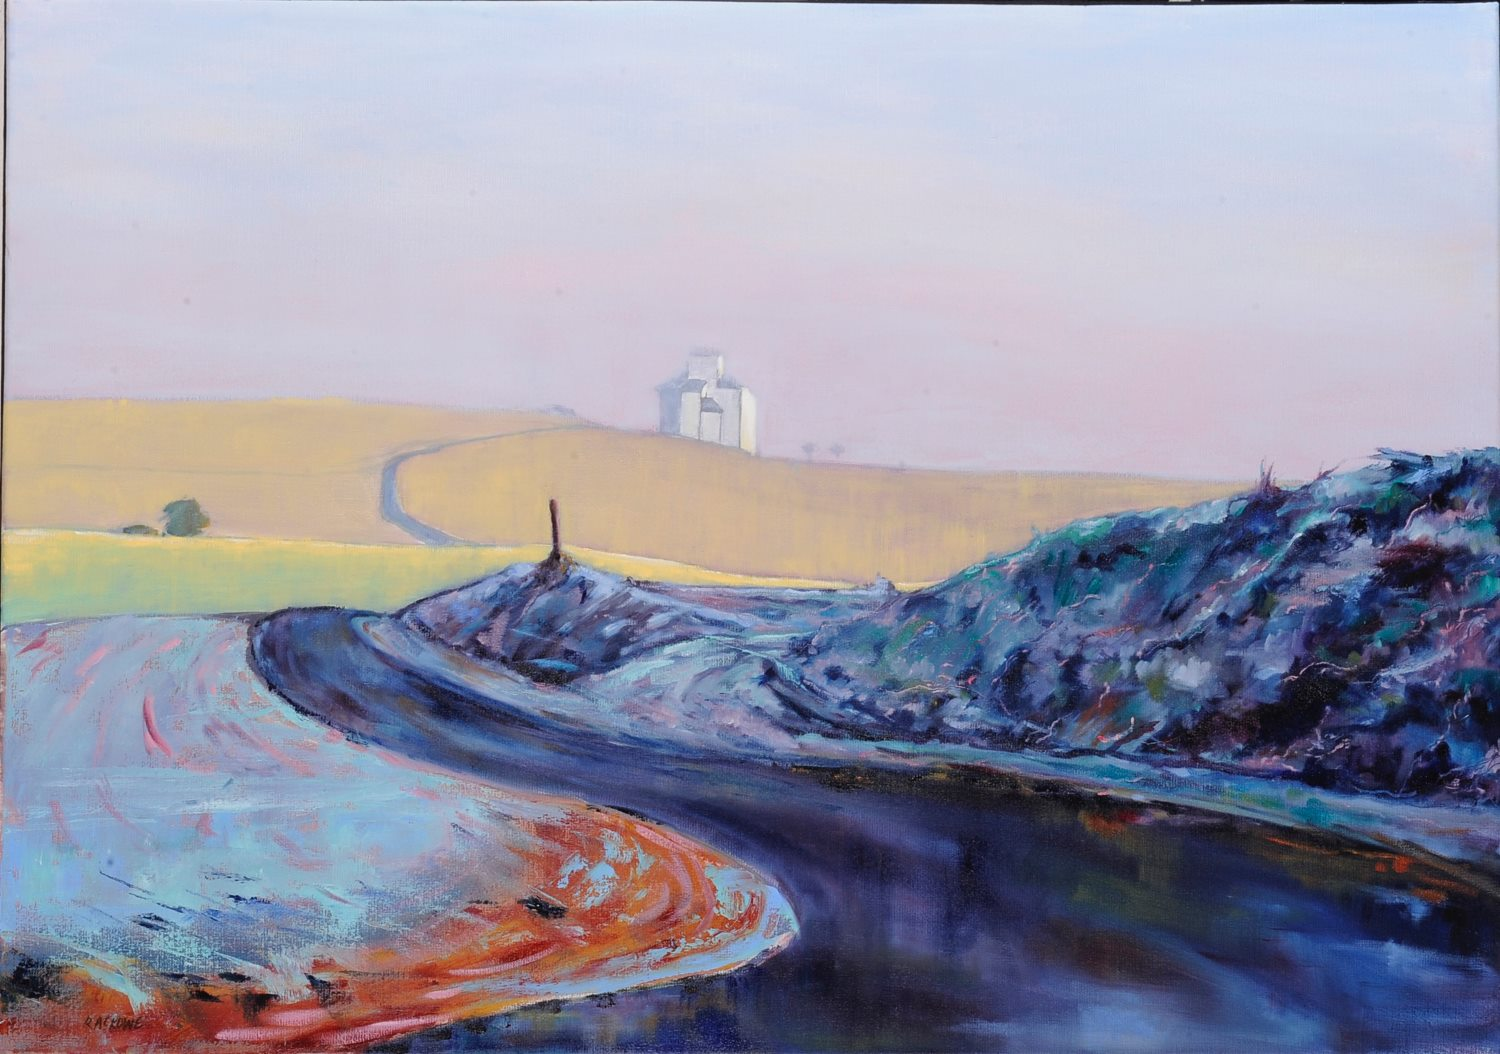 Towards the Silo (10 Minutes After) painting by Amanda Rackowe